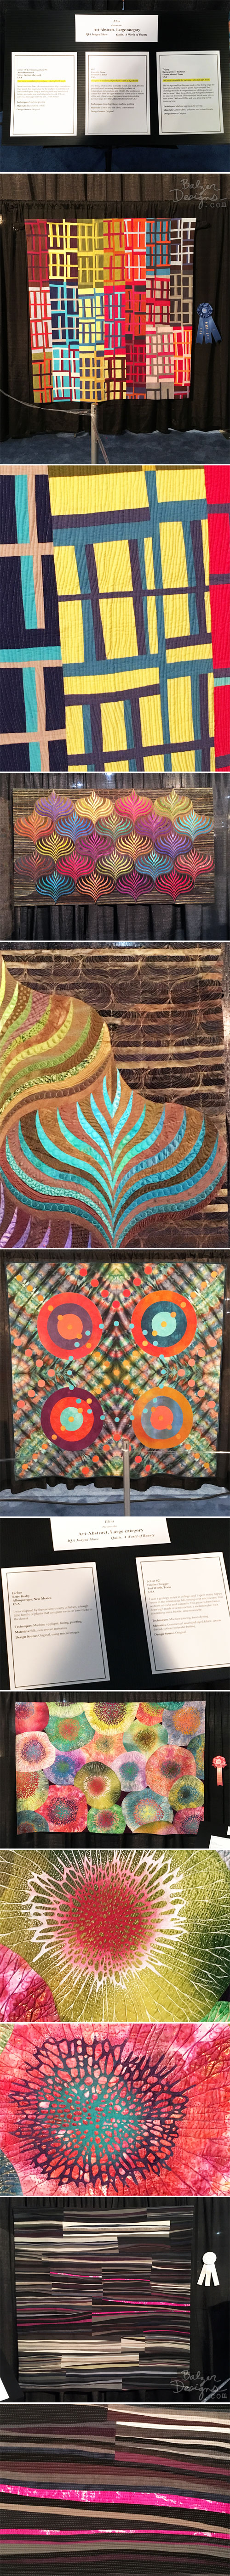 From the Balzer Designs Blog: Quilt Festival 2017: Part One